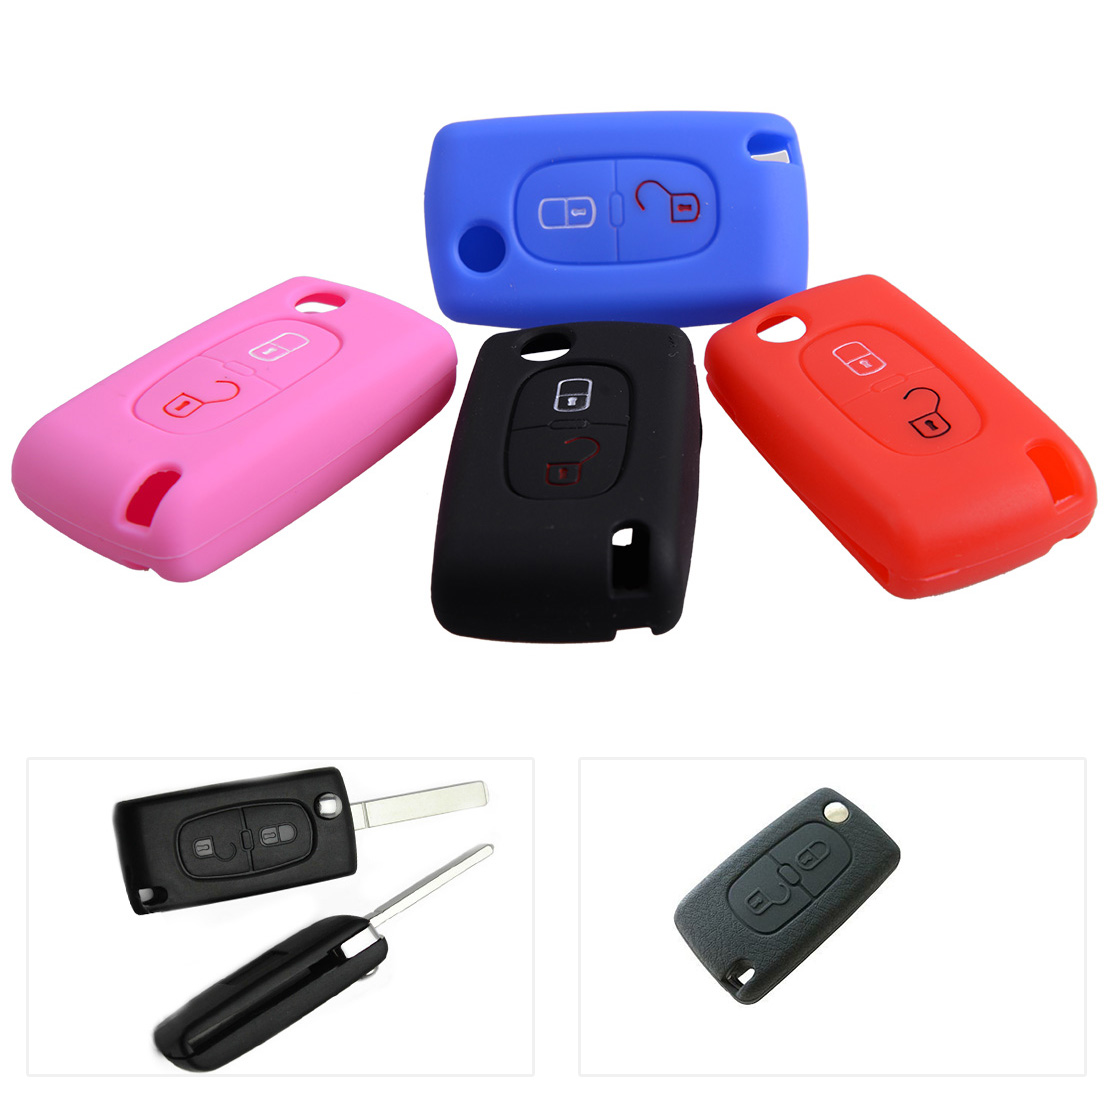 DWCX New Car Silicone Flip Key <font><b>Cover</b></font> Case Fob Shell 6.4 x 3.5 x 1.7cm Fit For Citrone C2 C3 C4 C5 C6 C8 <font><b>Peugeot</b></font> 307 <font><b>308</b></font> 407 image